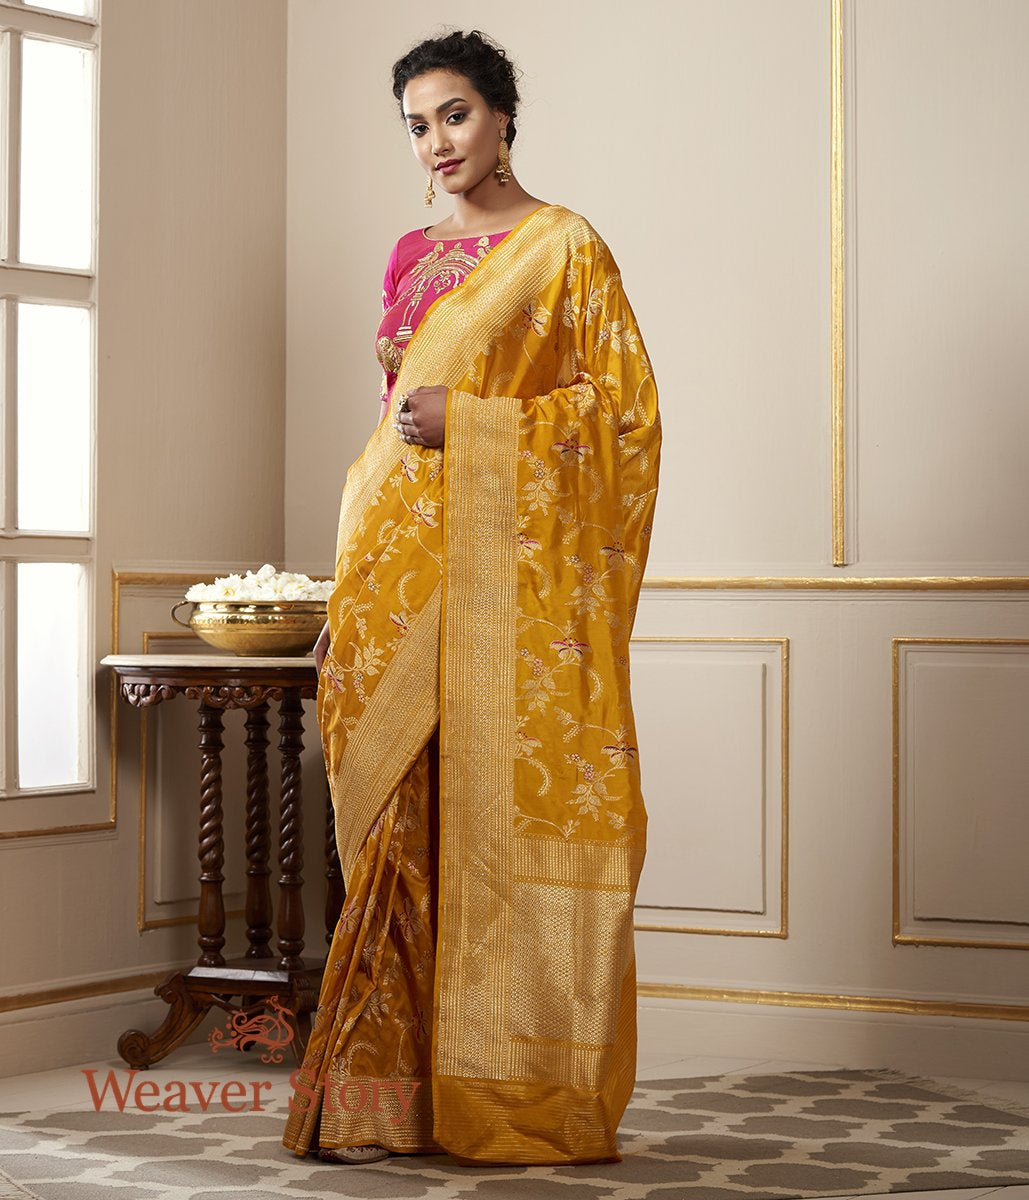 Handwoven Mustard Katan Silk Jangla Saree with Meenakari